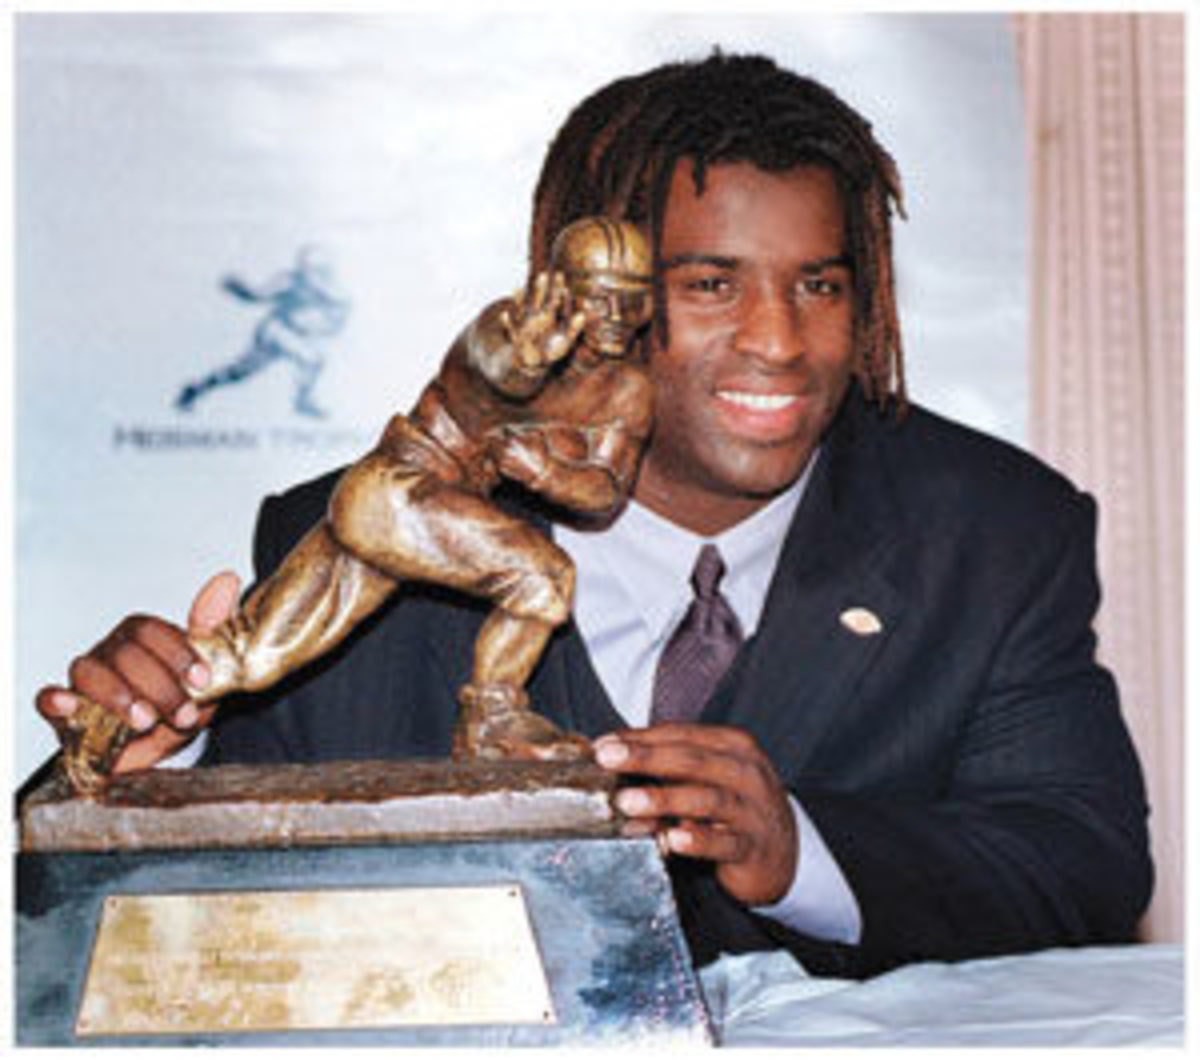 Ricky Williams with his Heisman Trophy in 1998. Image courtesy Heritage Auctions